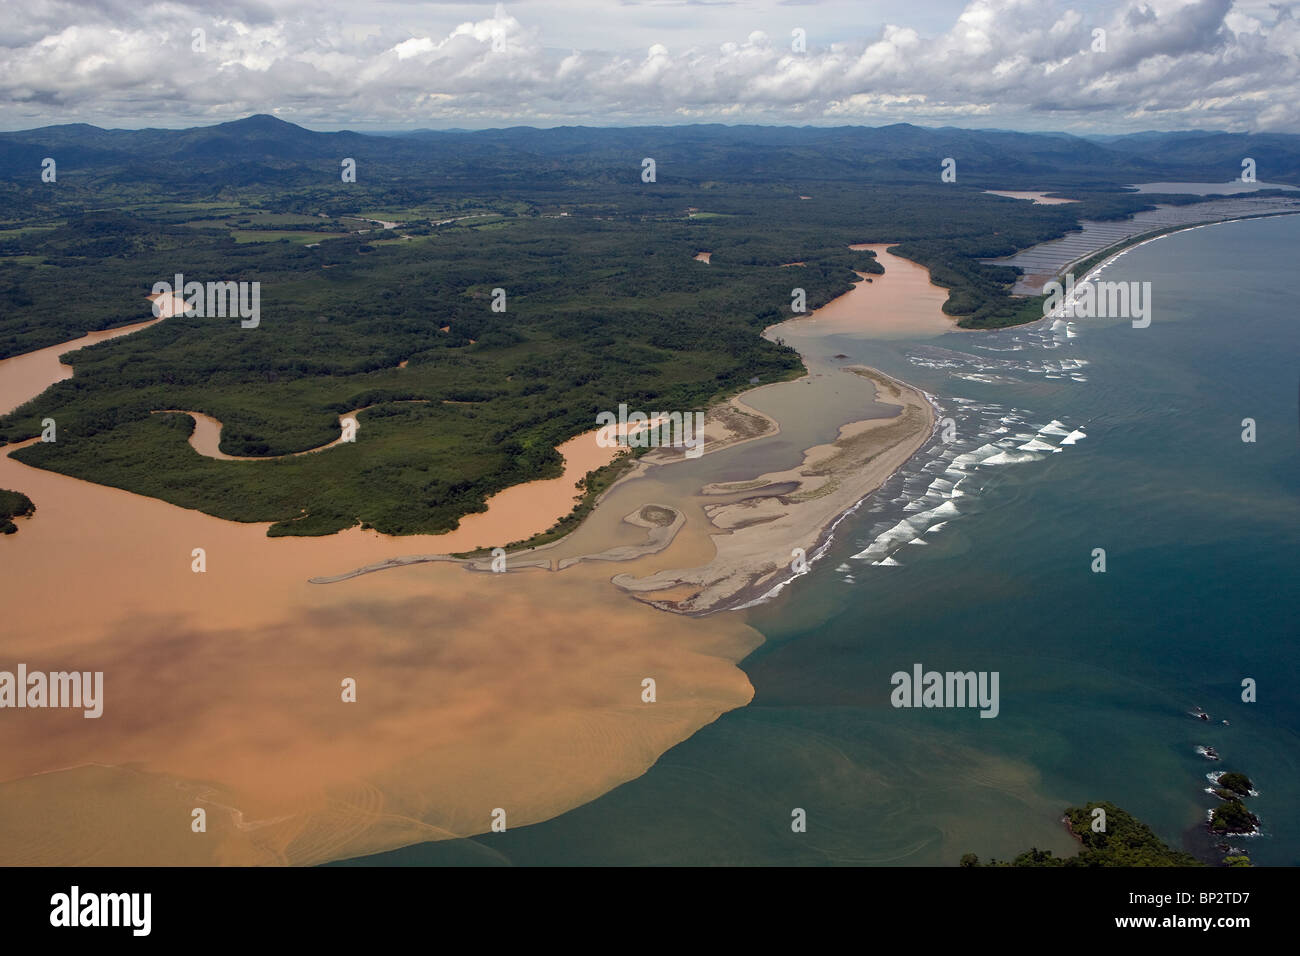 aerial view above sediment filled muddy river flowing into Pacific ocean Republic of Panama Stock Photo